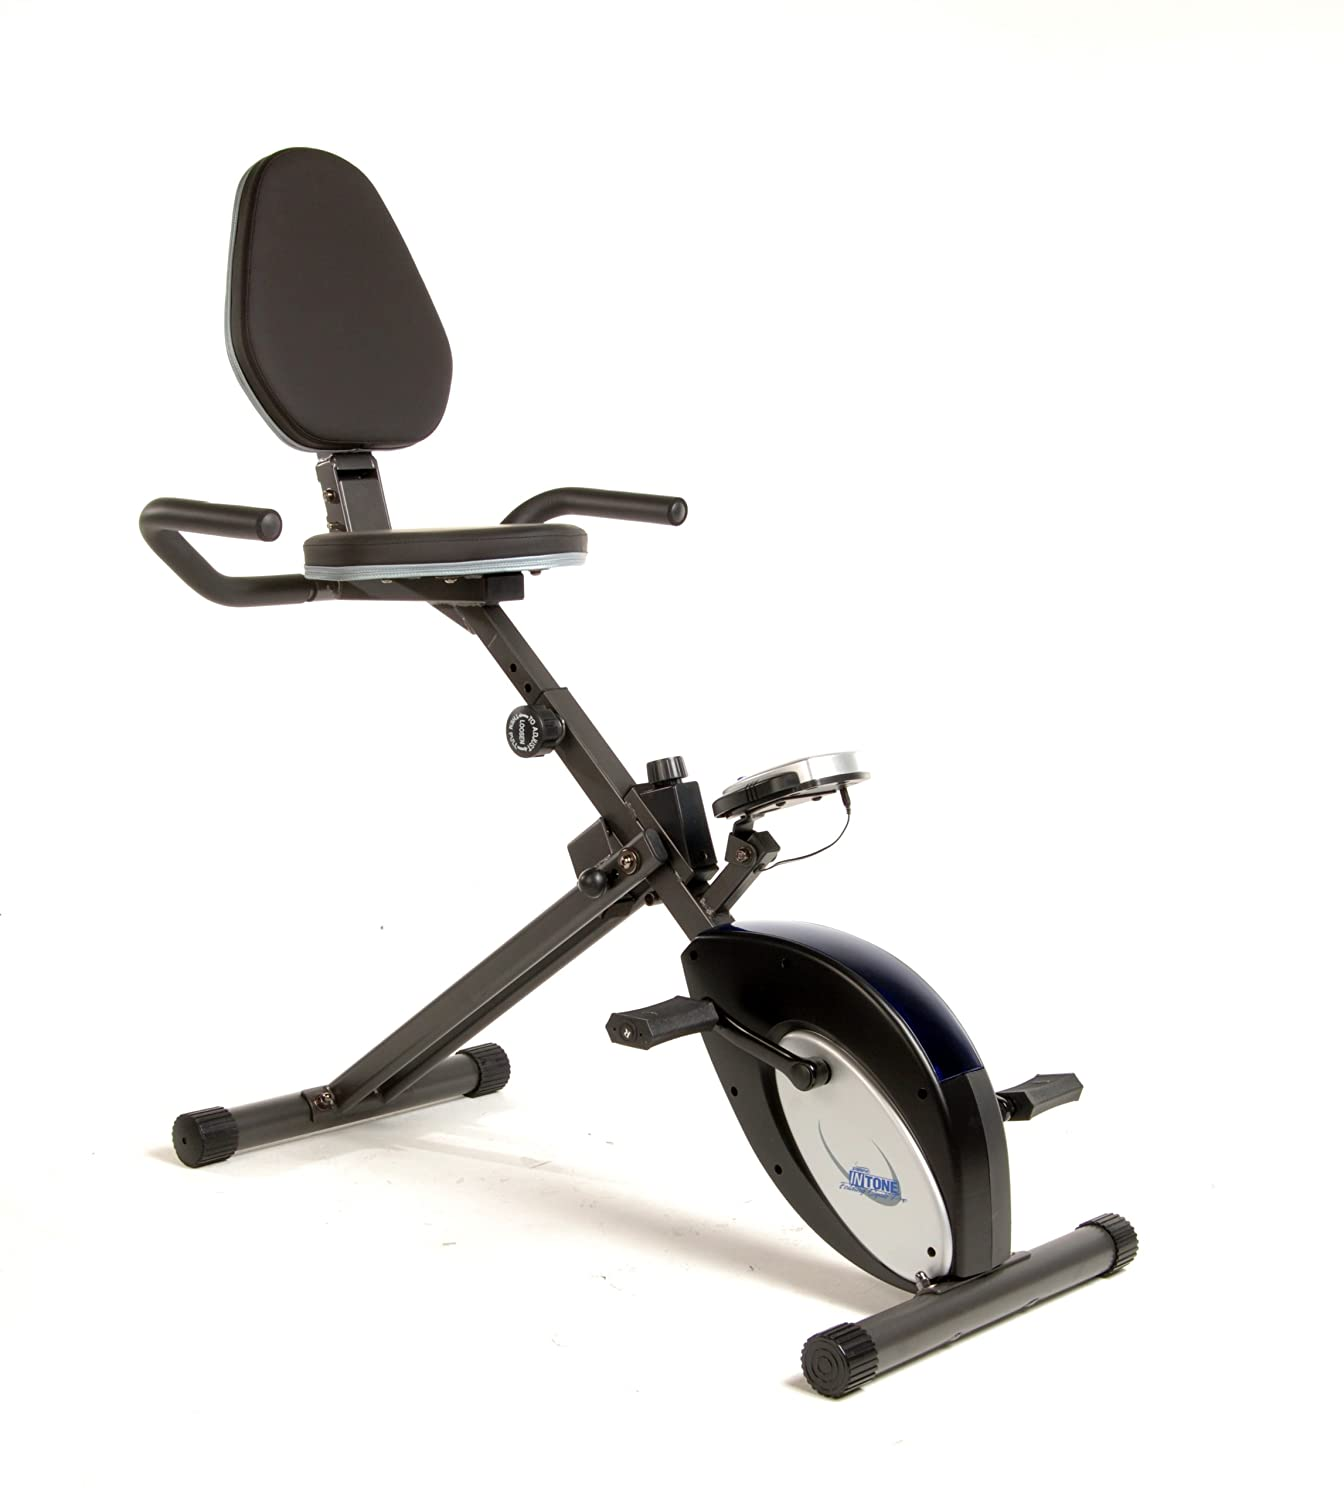 Amazon.com  Stamina InTone Folding Recumbent Bike  Exercise Bikes  Sports u0026 Outdoors  sc 1 st  Amazon.com & Amazon.com : Stamina InTone Folding Recumbent Bike : Exercise ... islam-shia.org